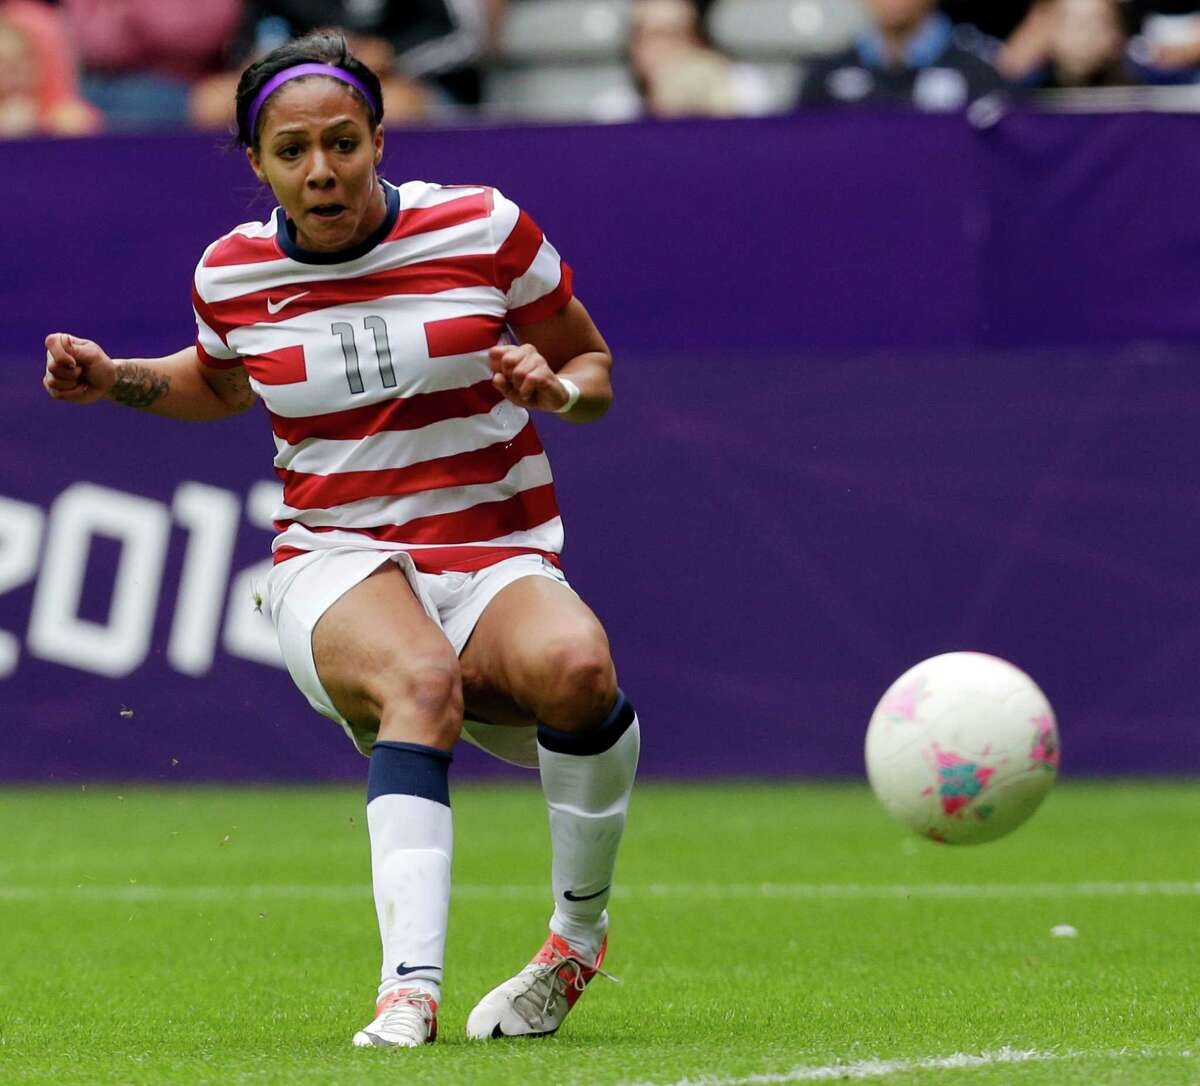 United States' Sydney Leroux watches the ball go into the goal New Zealand's during their quarter-final women's soccer match Friday.